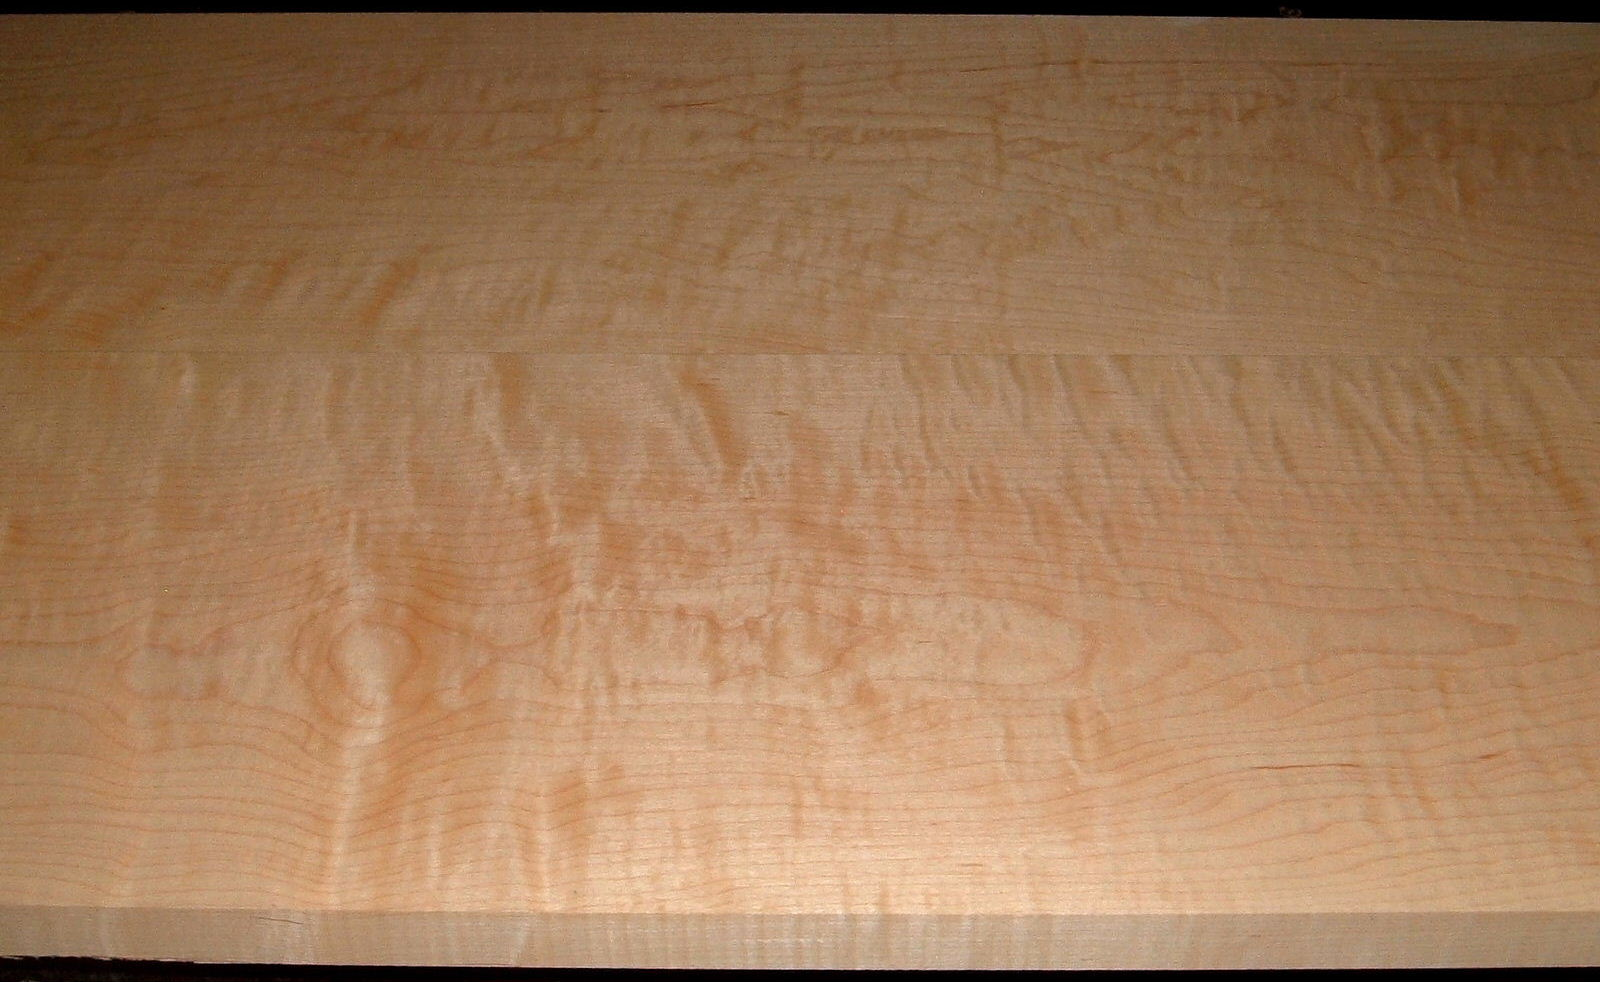 HM2101-22, 7/8x9-1/2x46, 15/16x9-3/4x46, Cut from the same plank, Curly Tiger Hard Maple